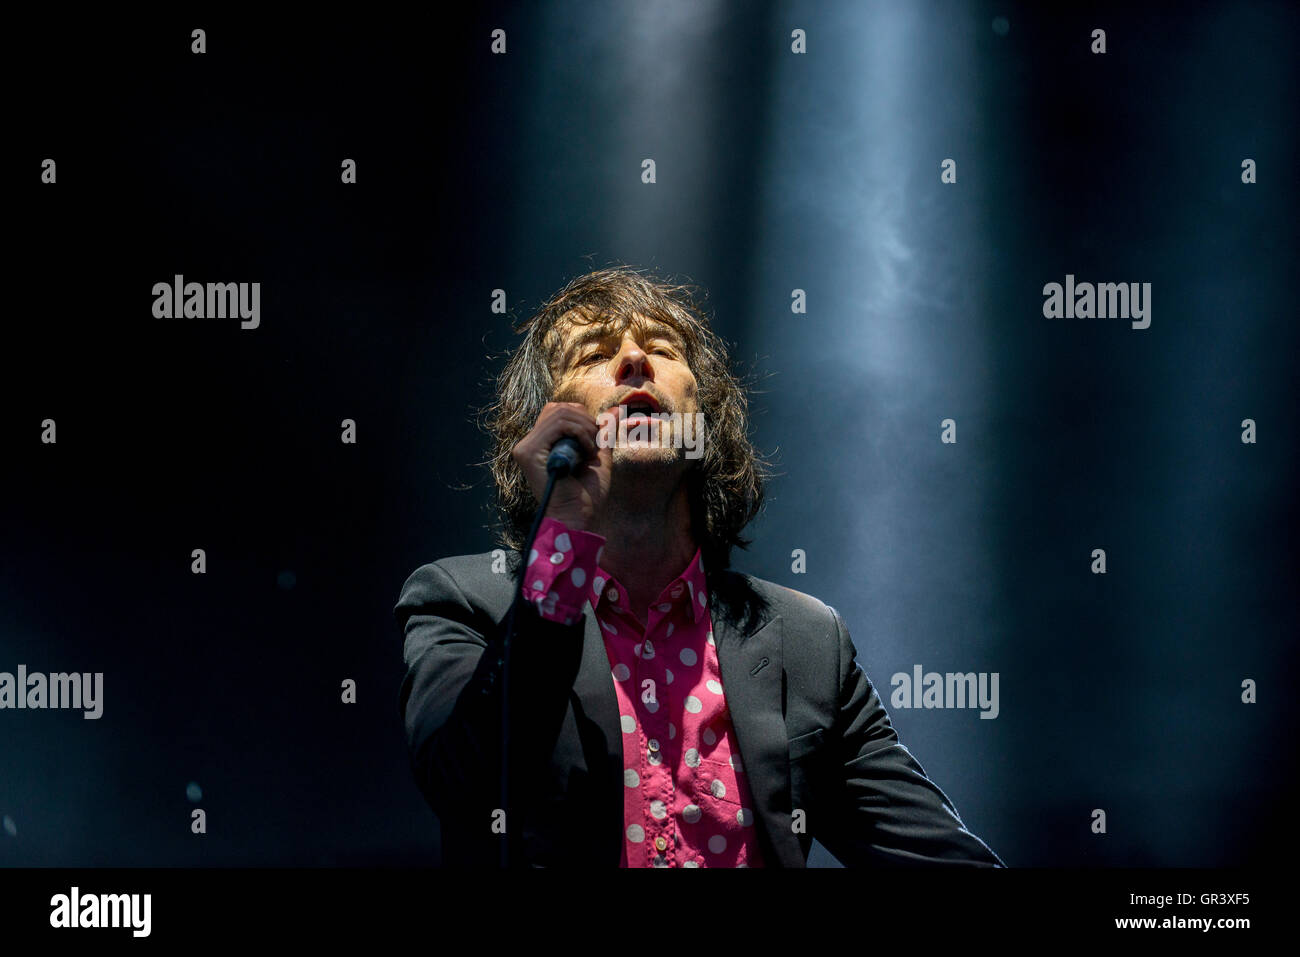 Bobby Gillespie lead singer of Primal Scream preforming ahead of Massive Attack on The Downs in Bristol, September - Stock Image